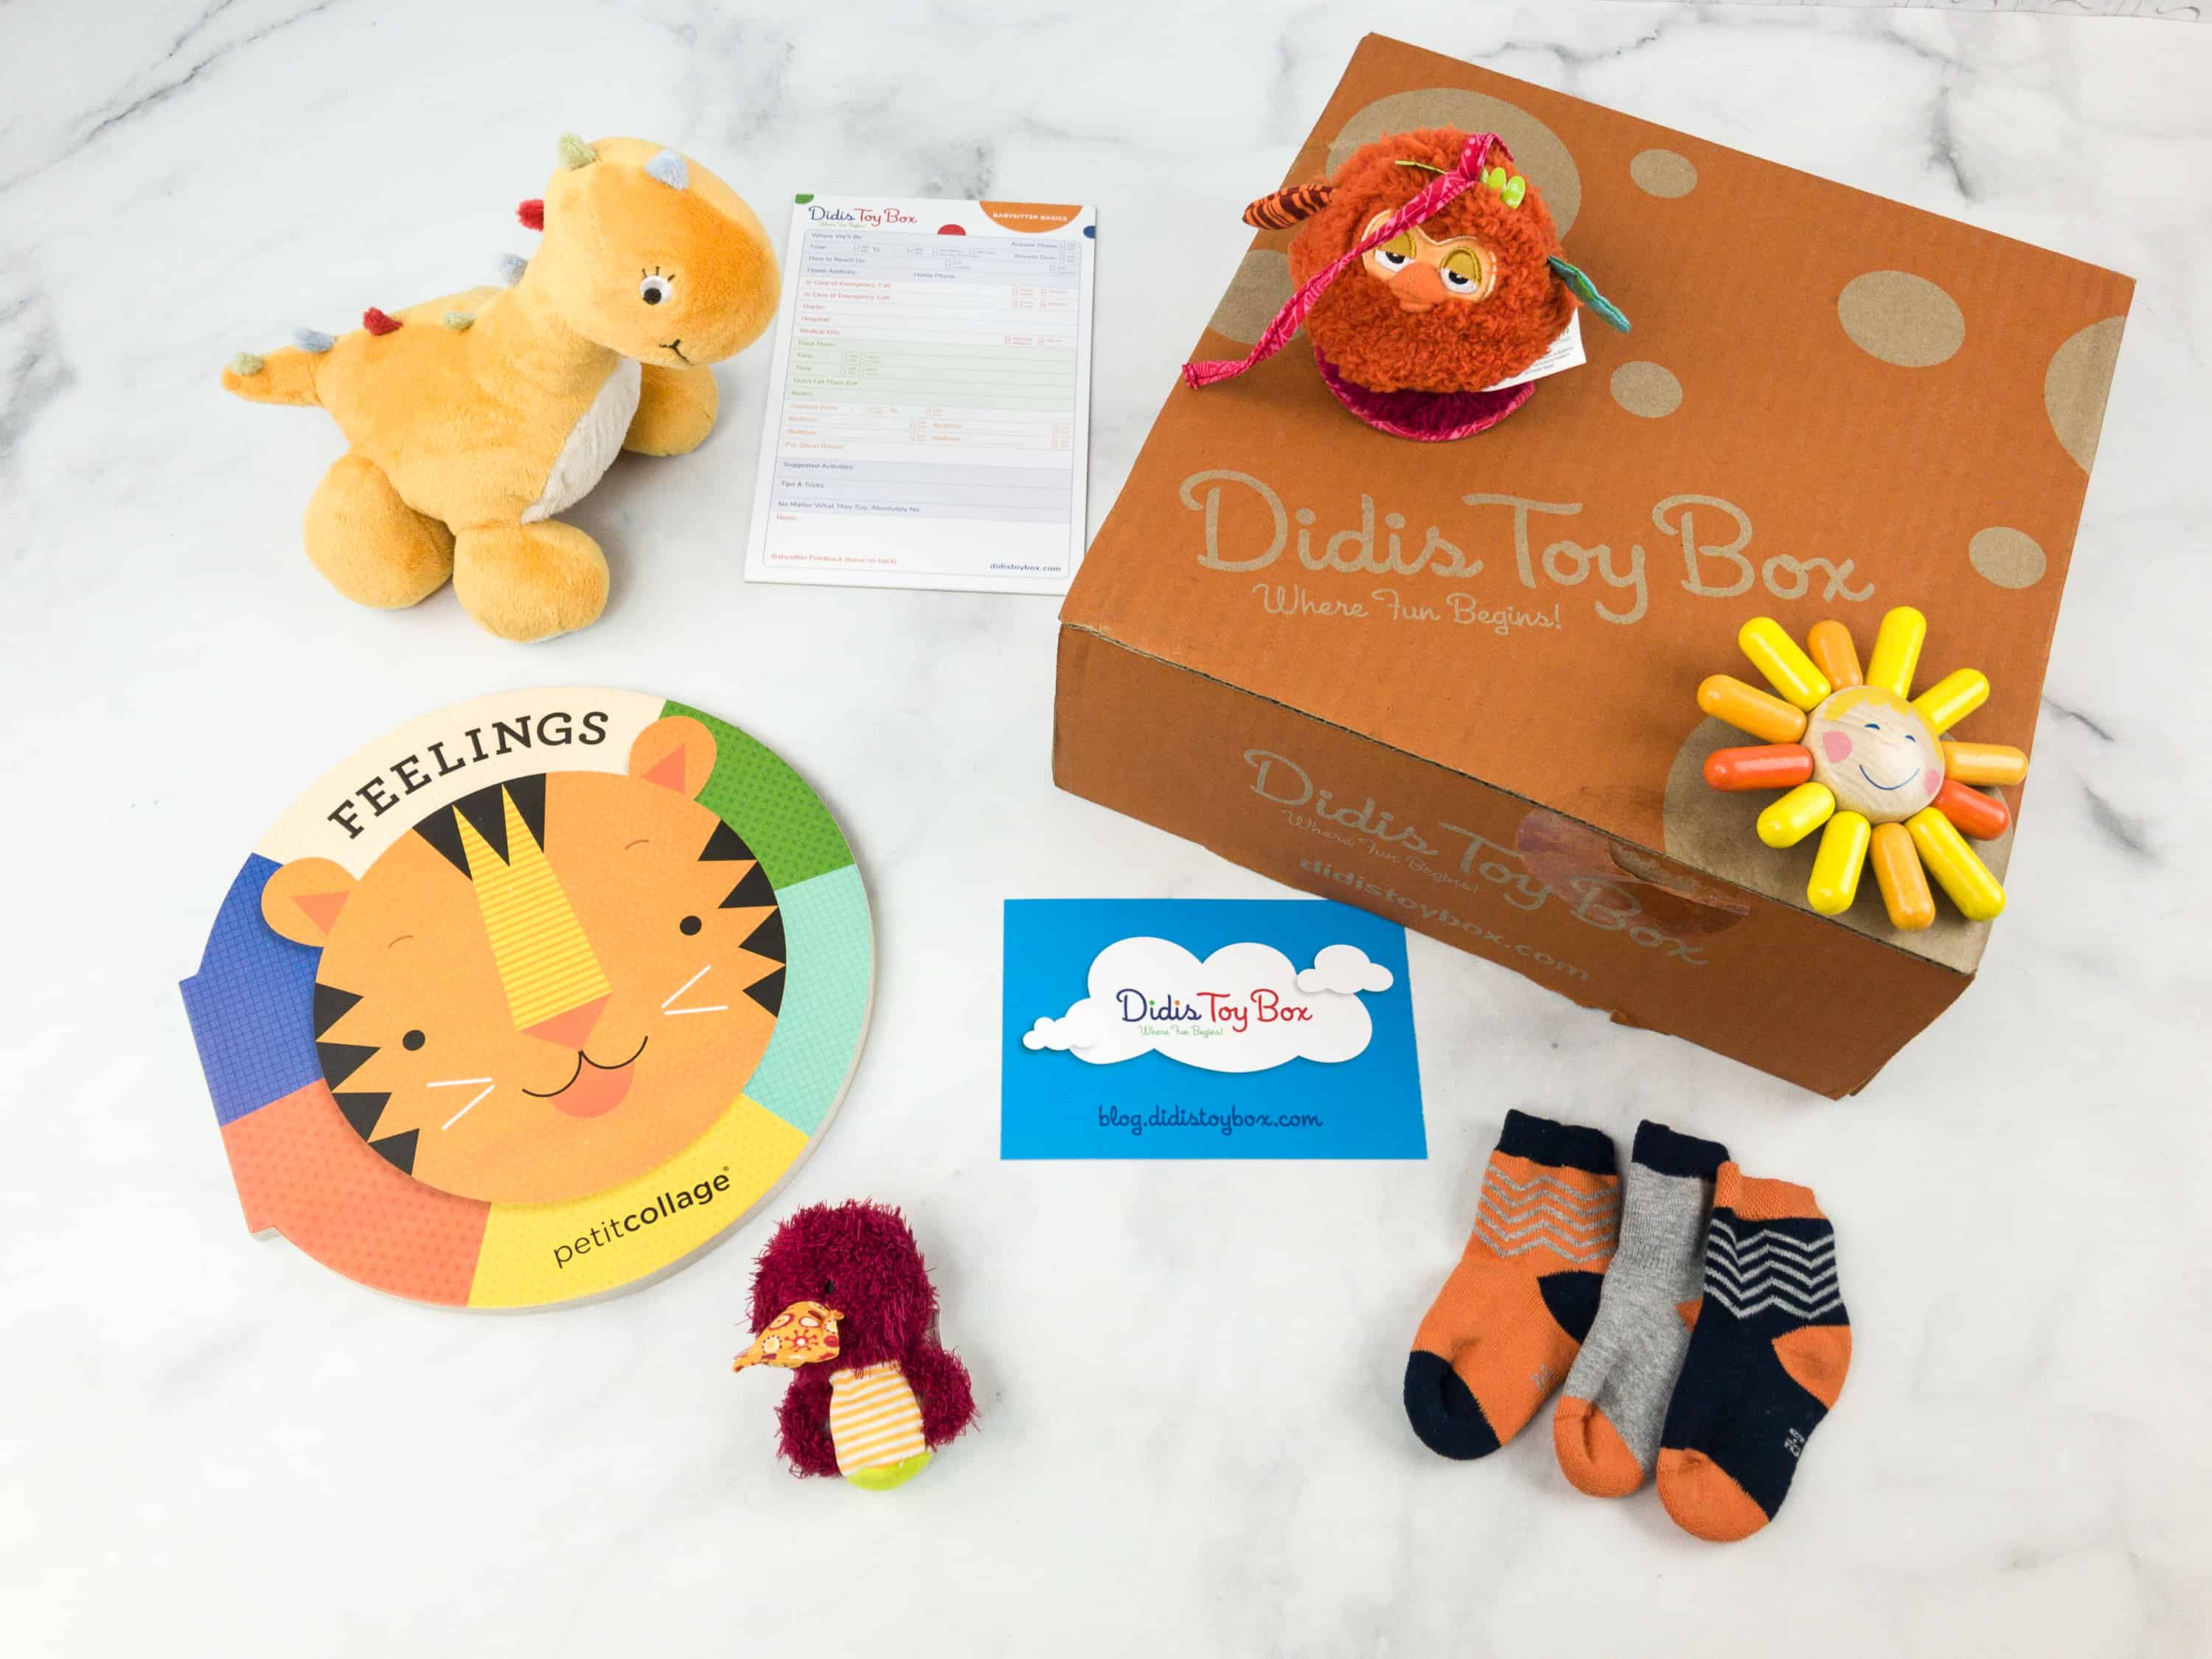 Didis Toy Box July 2018 Subscription Box Review #2 + Coupon!